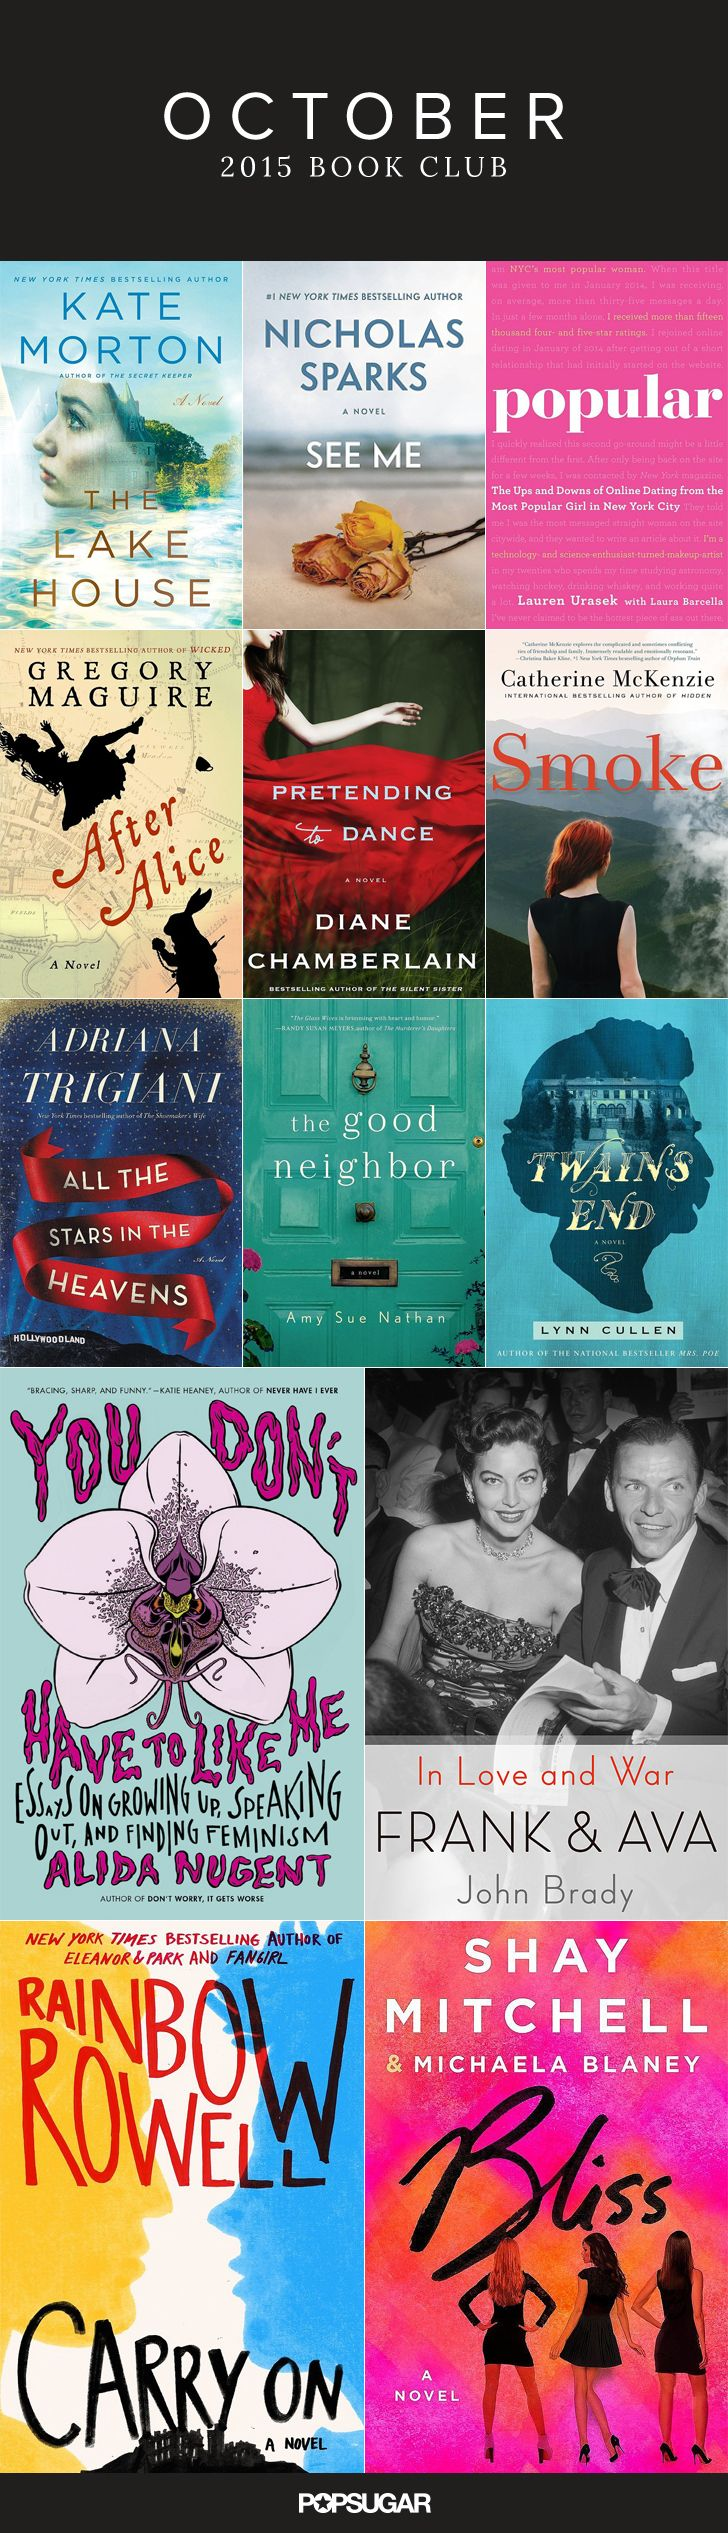 Celebrate the Best Month of the Year With These 13 Book Releases